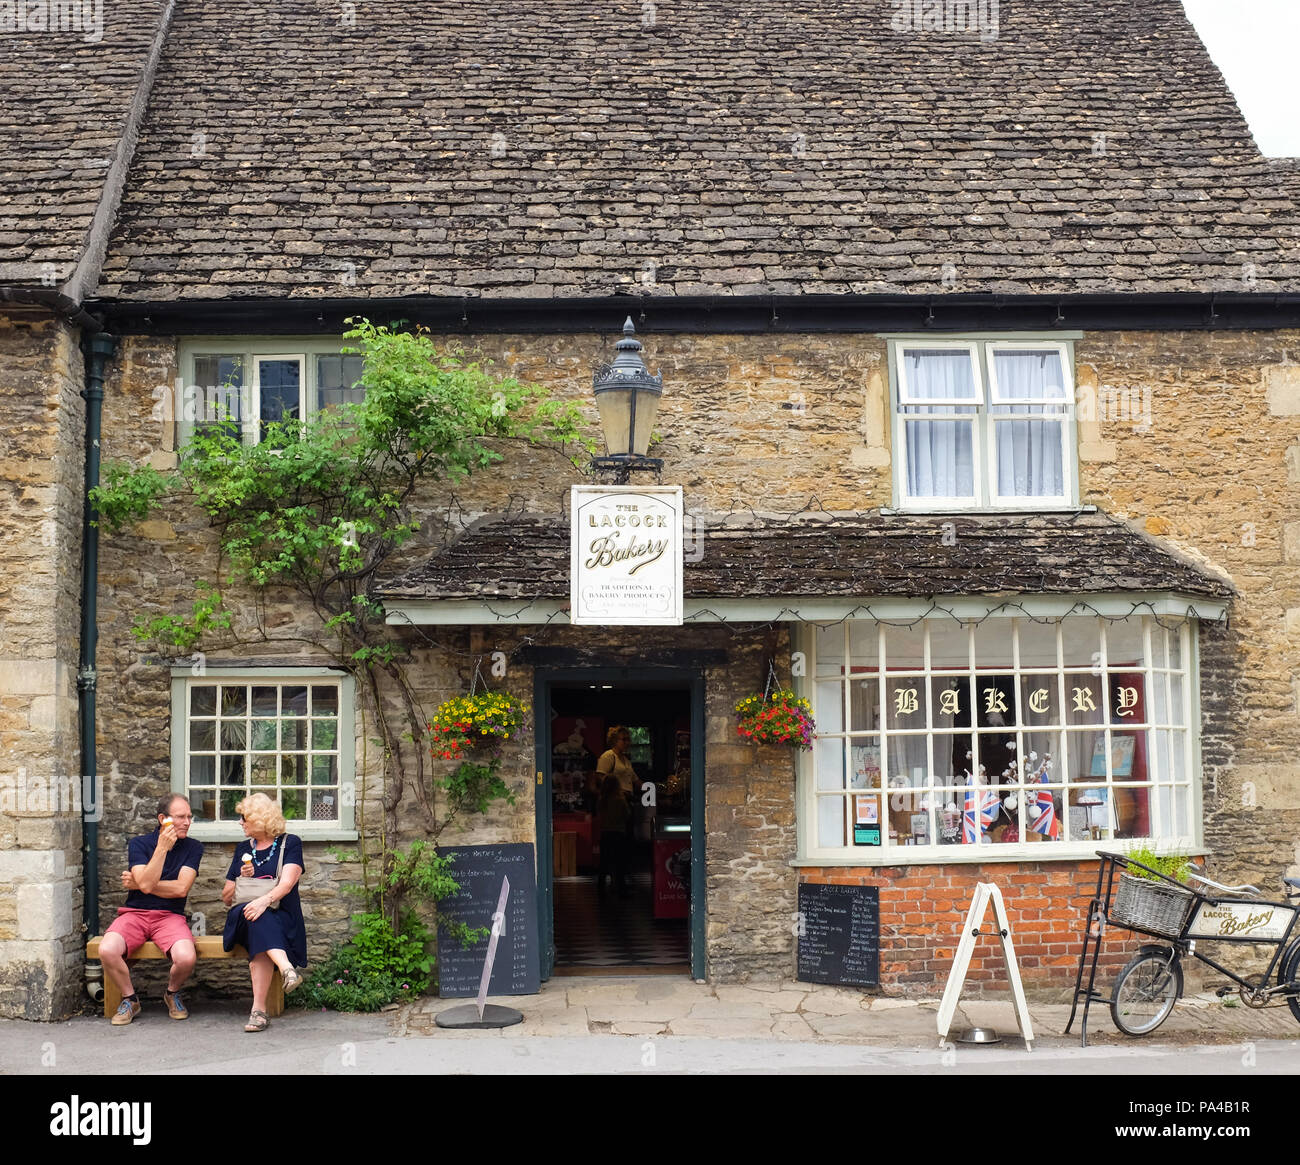 The bakery in the village of Lacock in Wiltshire, England. - Stock Image